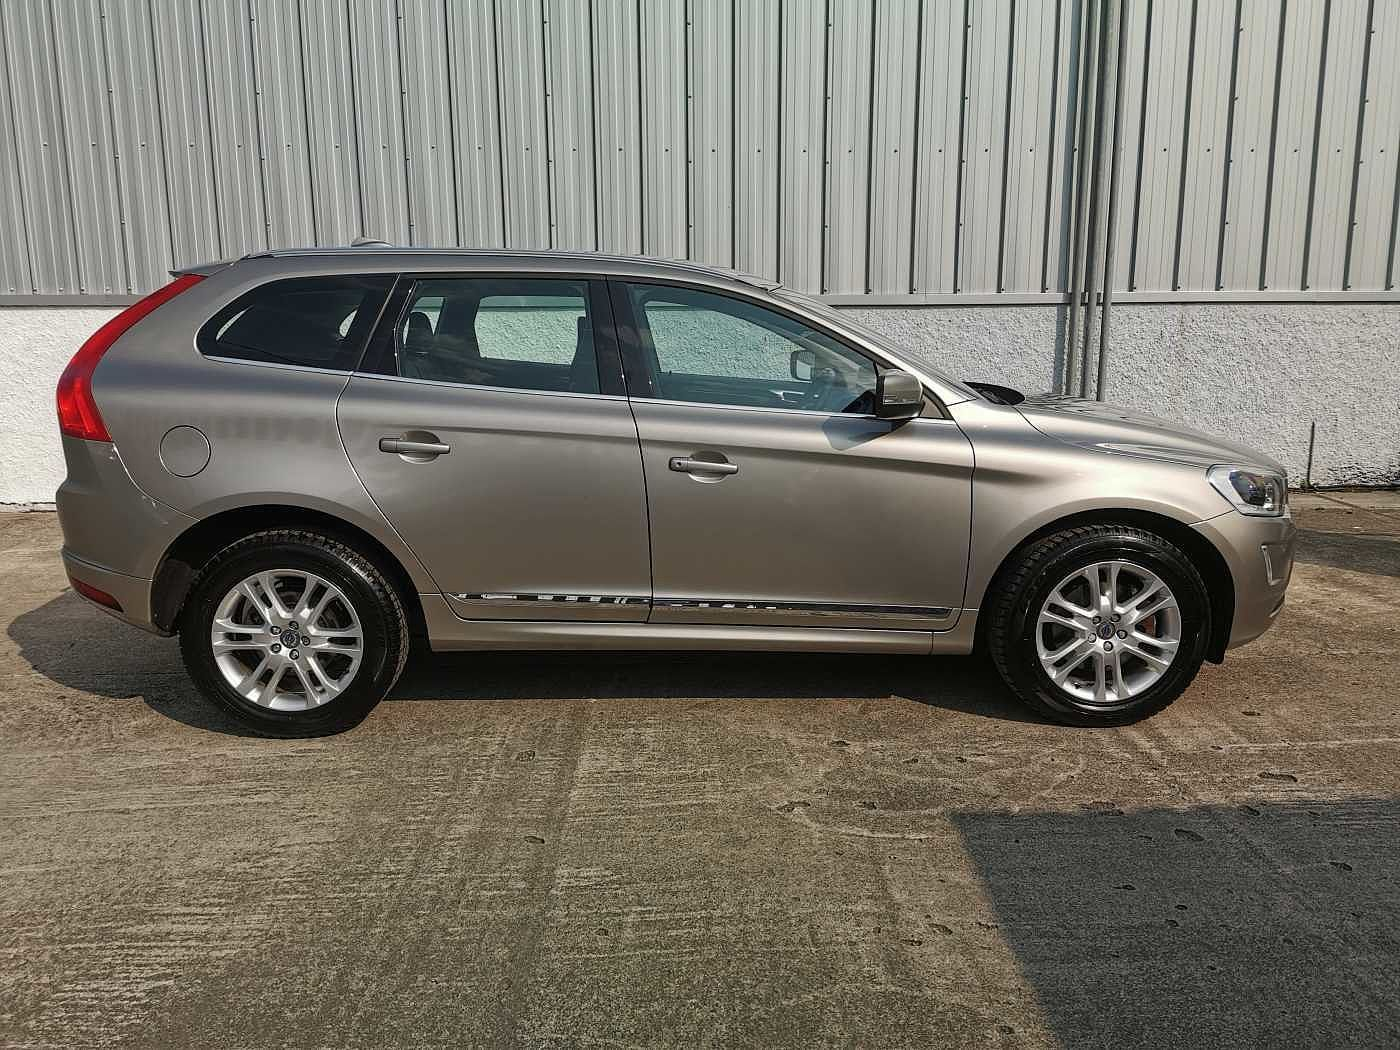 Volvo XC60 2.4 D5 AWD (215PS) SE Lux Nav 5-Dr Estate